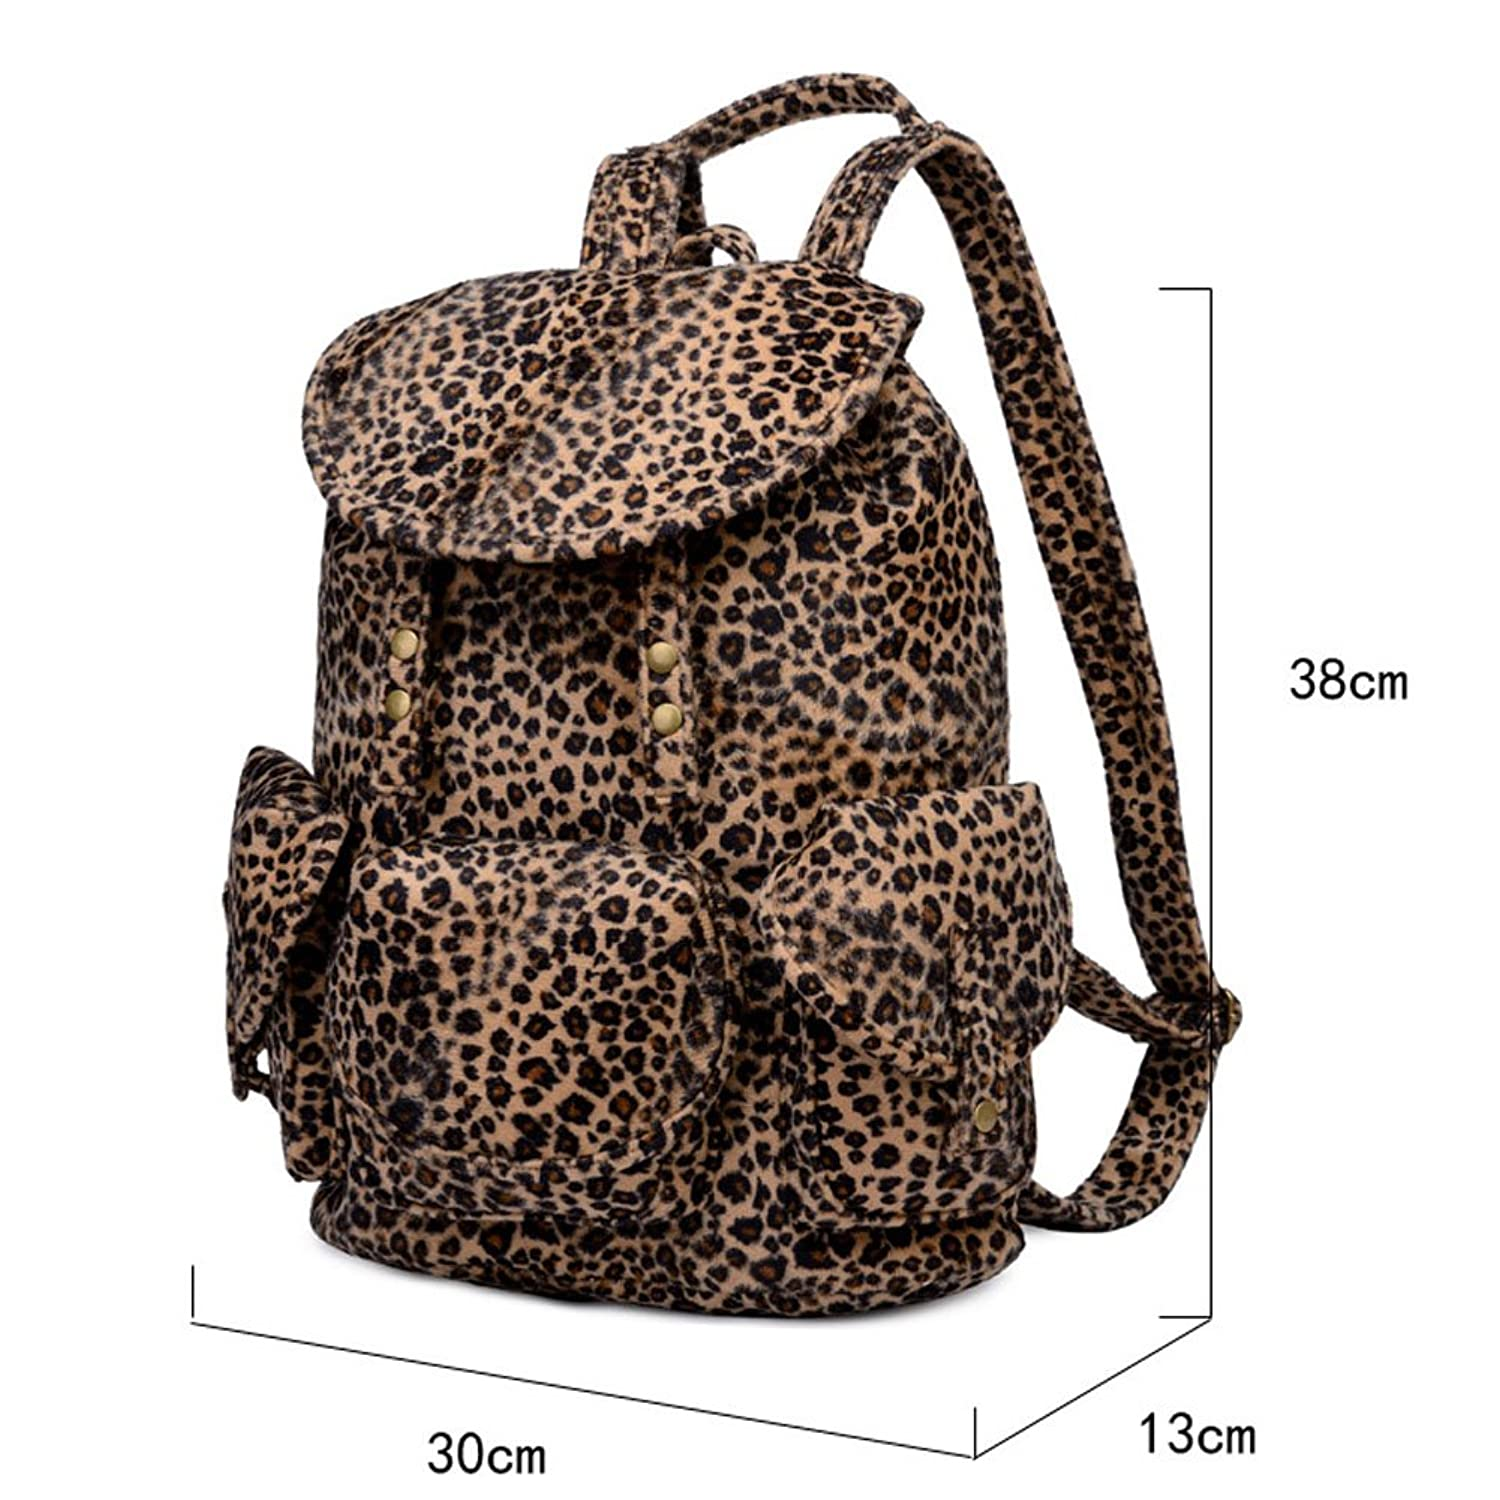 Firstsight Fashion Leopard Plush Backpack School Laptop Bag for Teens Girl Student